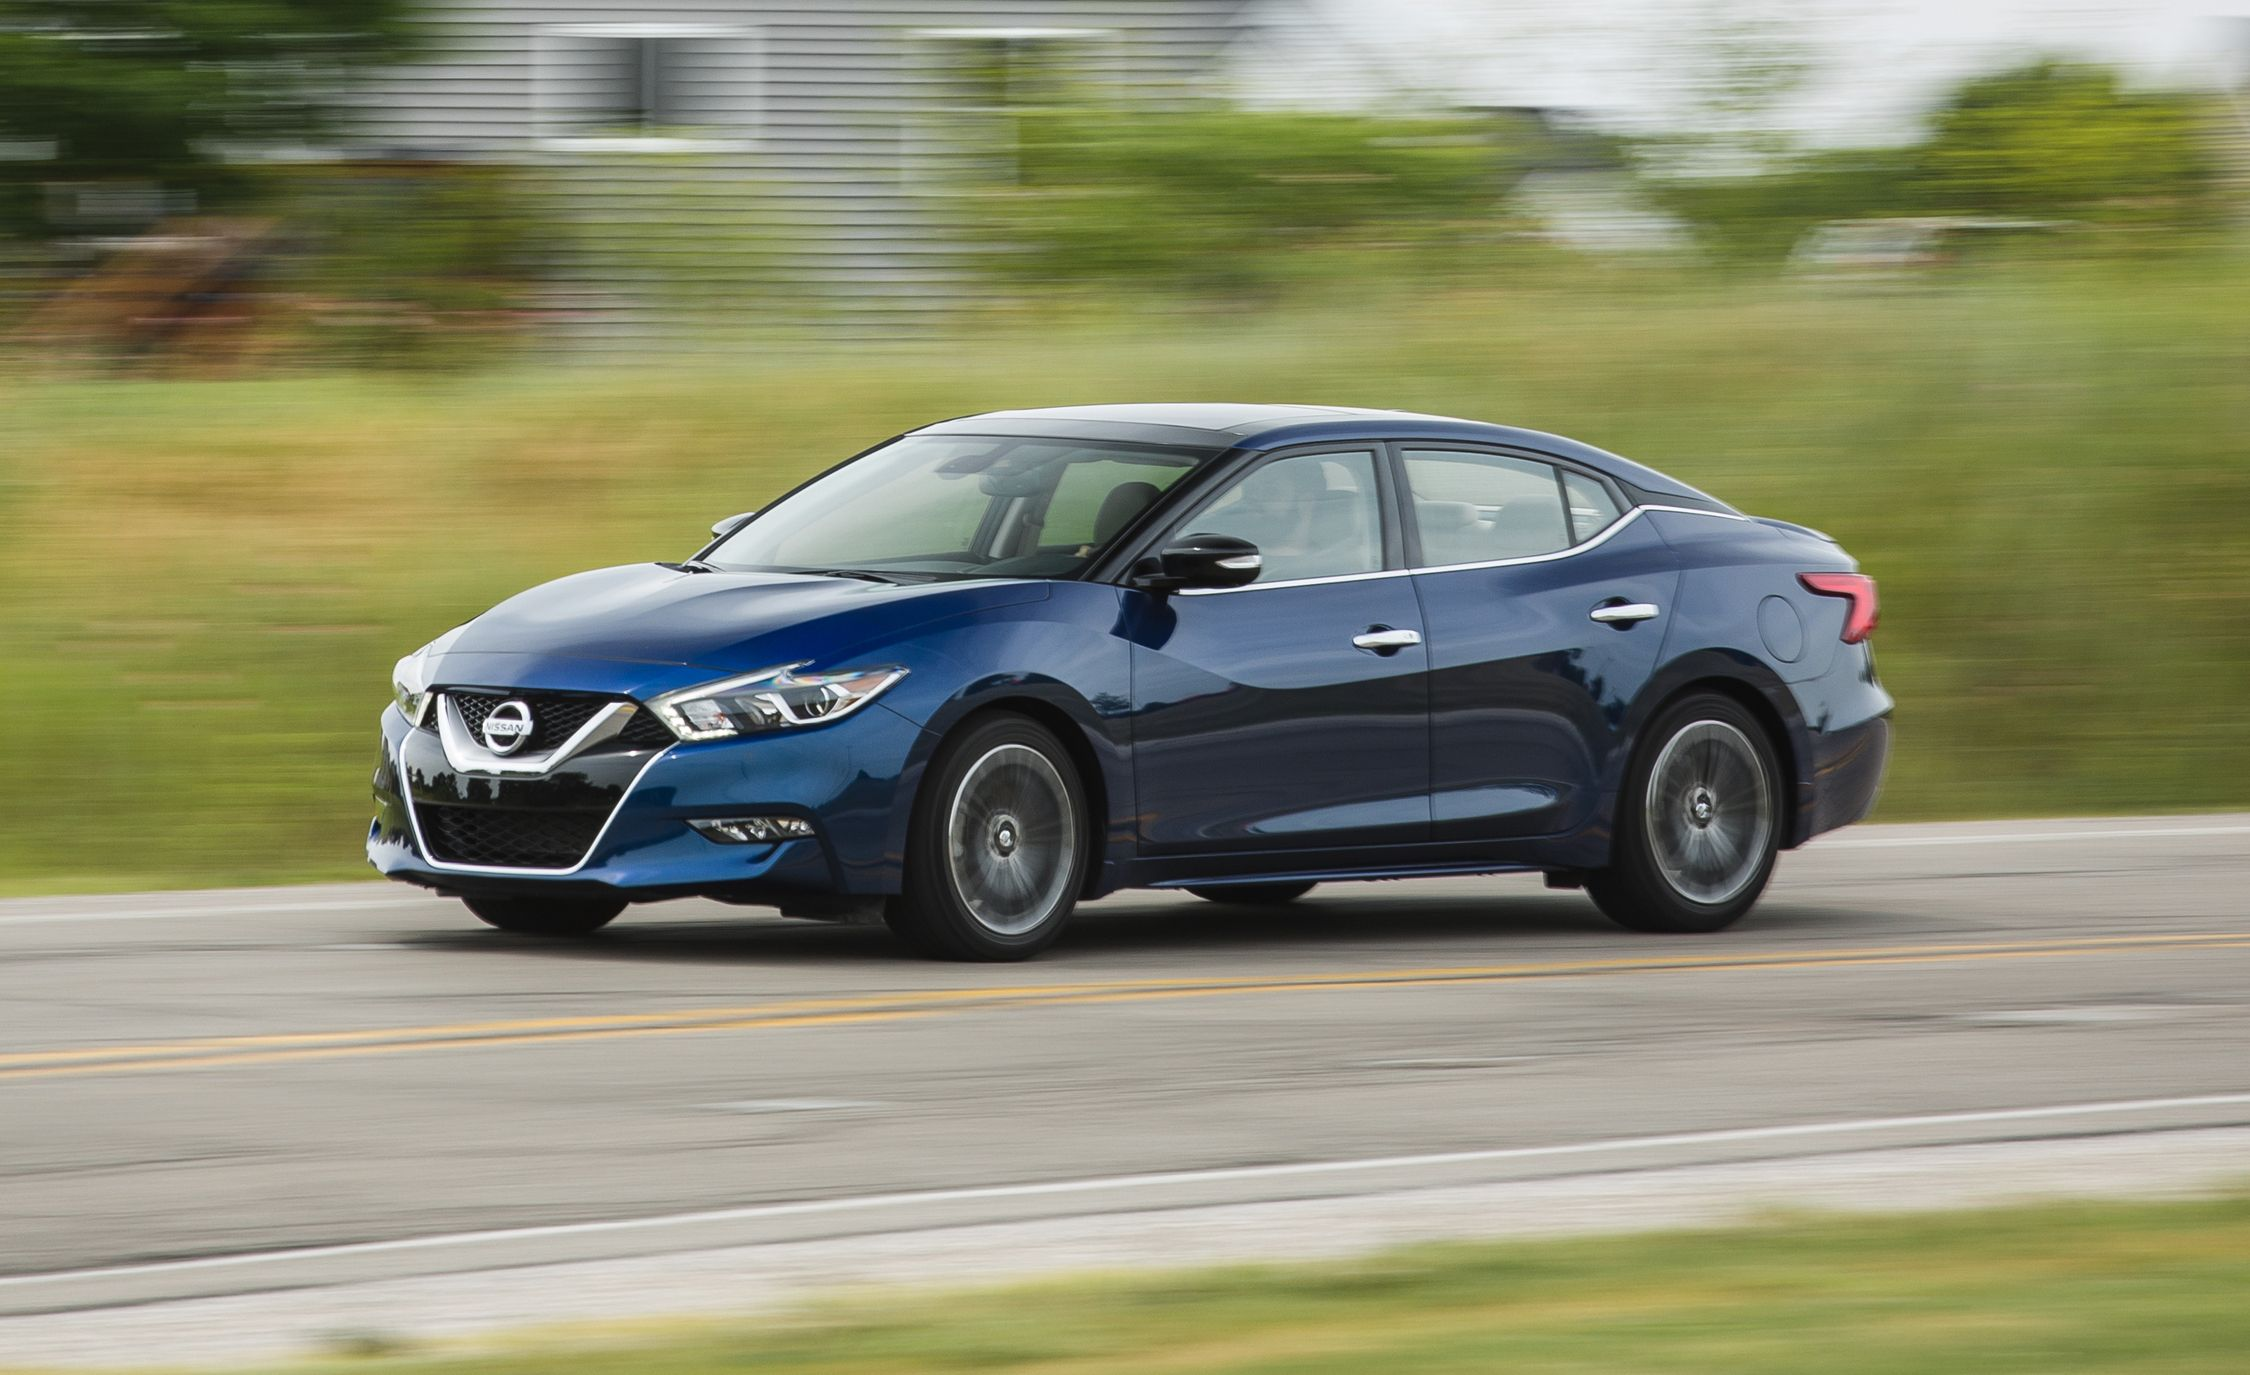 2018 nissan maxima in depth model review car and driver rh caranddriver com Nissan 240SX Nissan 200